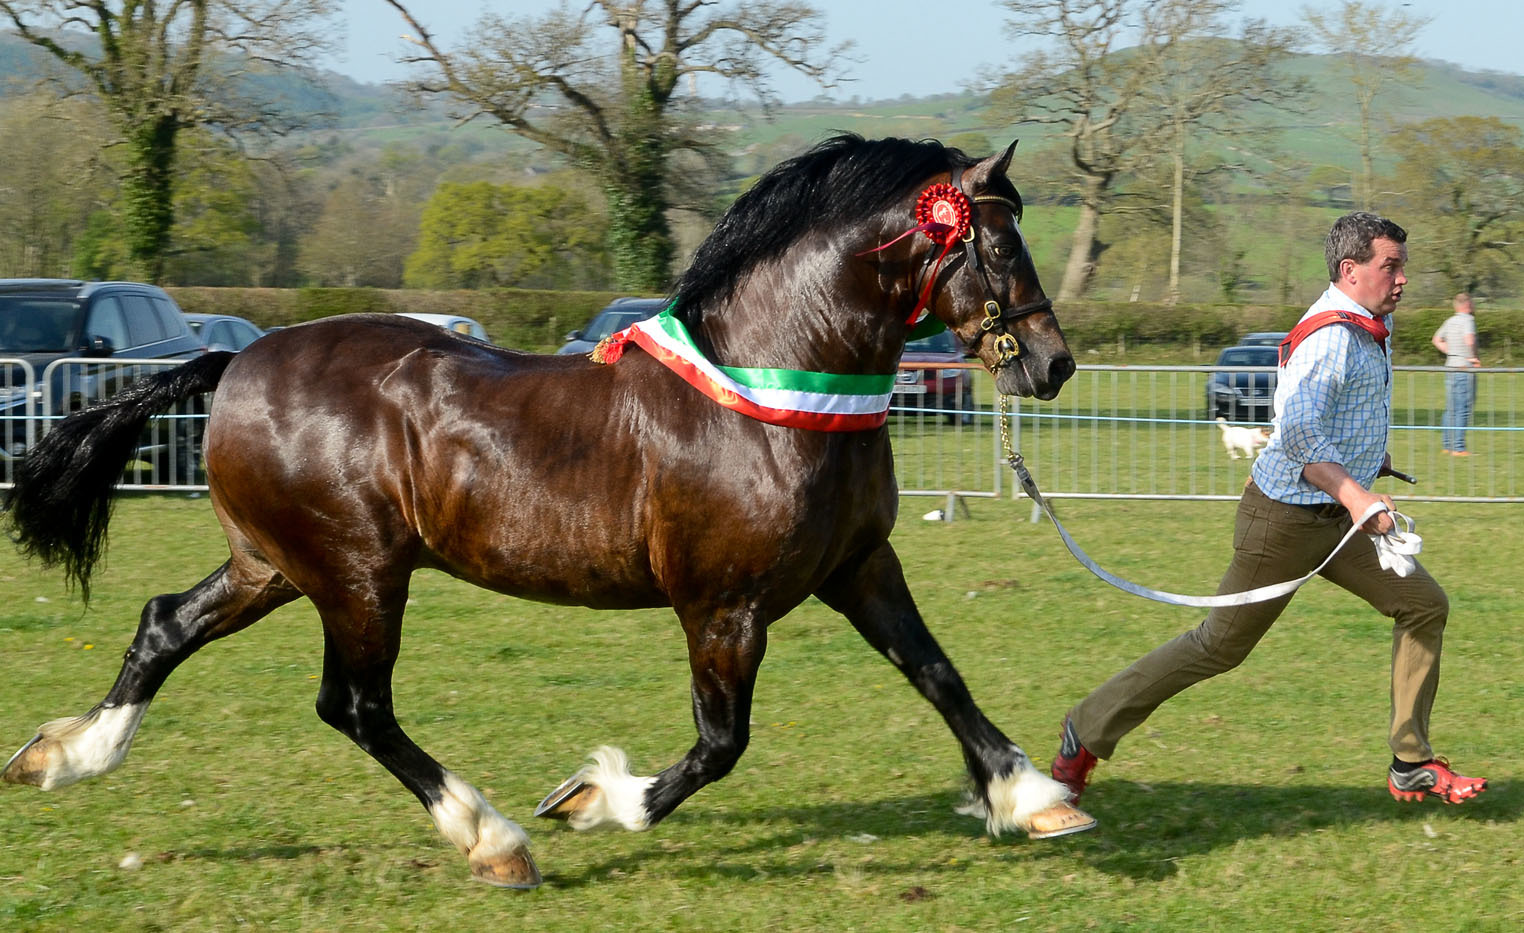 Supreme Champion at Lampeter Stallion Show was Gwynfaes Seren Wledig owned by M, D, & C Evans, Cynwyl Elfed c/o Dorian Lloyd, Llanfechain